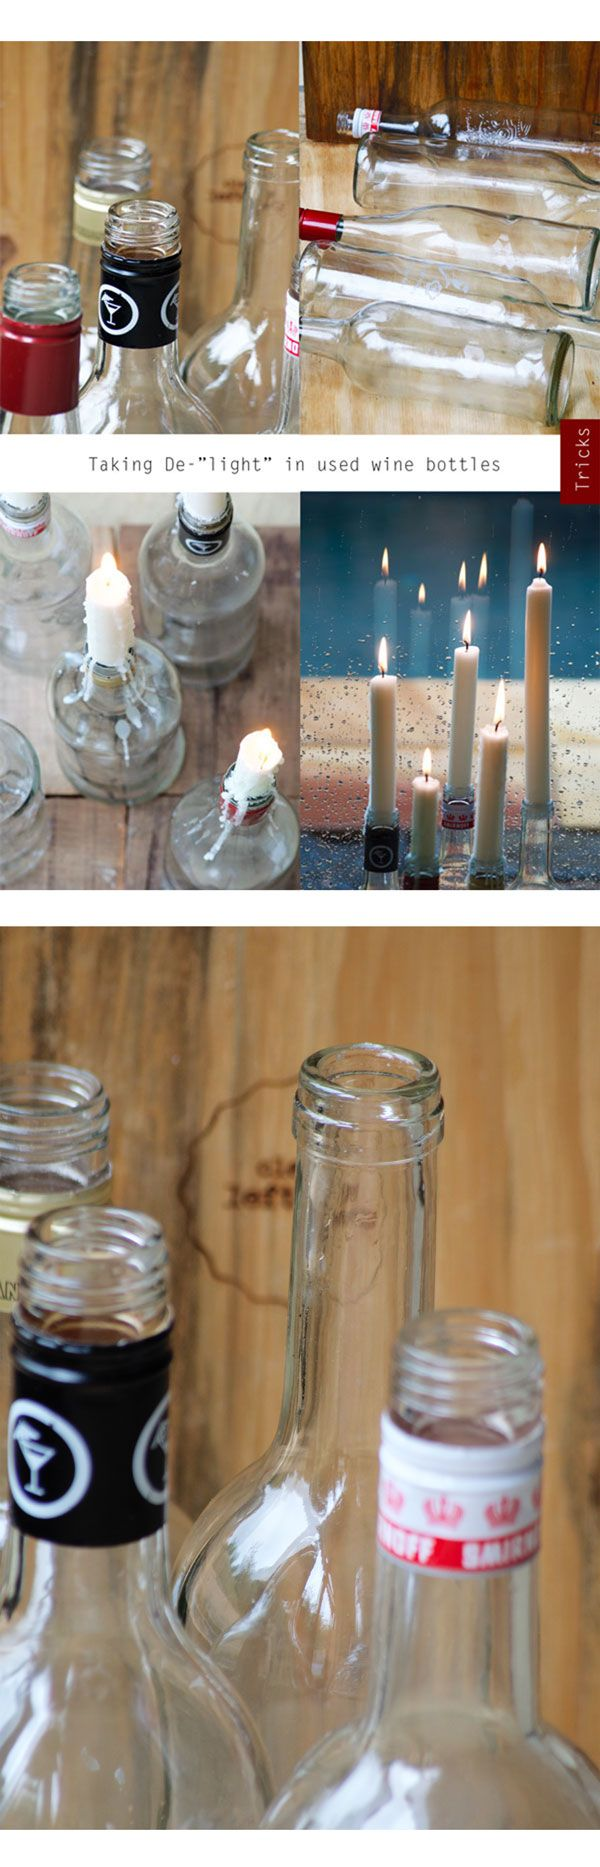 Giving used wine bottles a reason to shine!